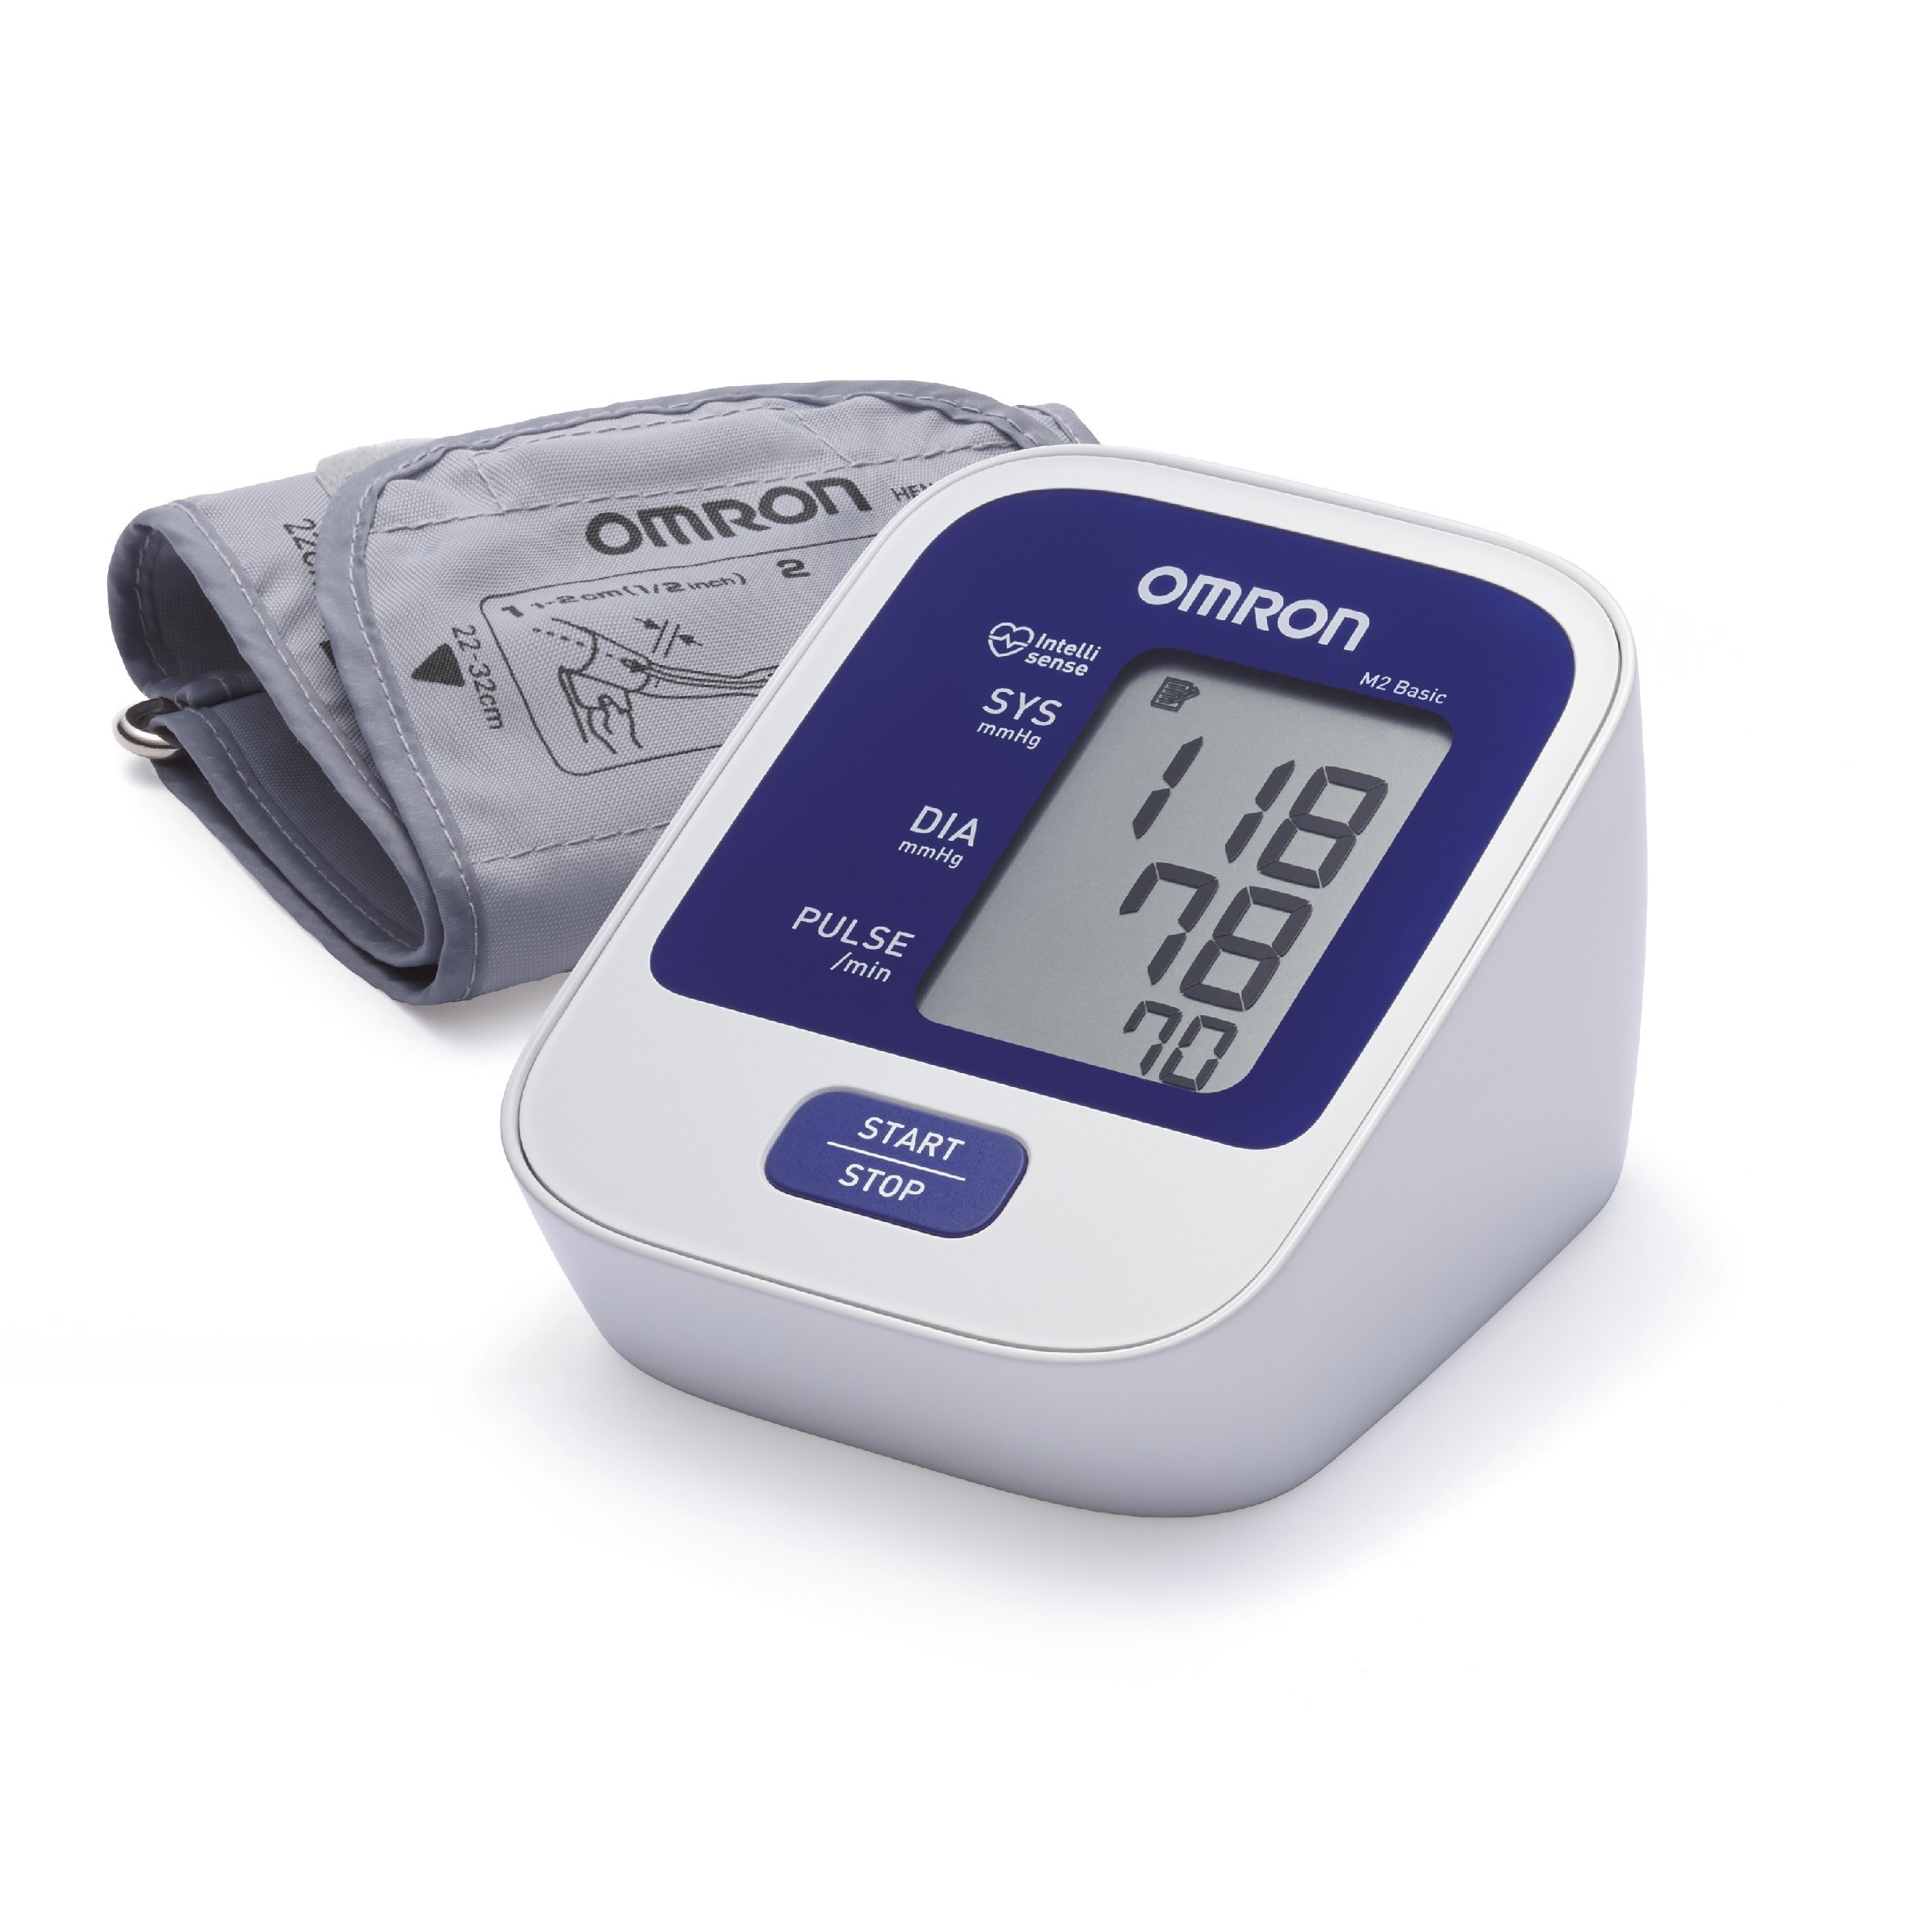 OMRON M2 Basic Blood Pressure Monitor for Upper Arm